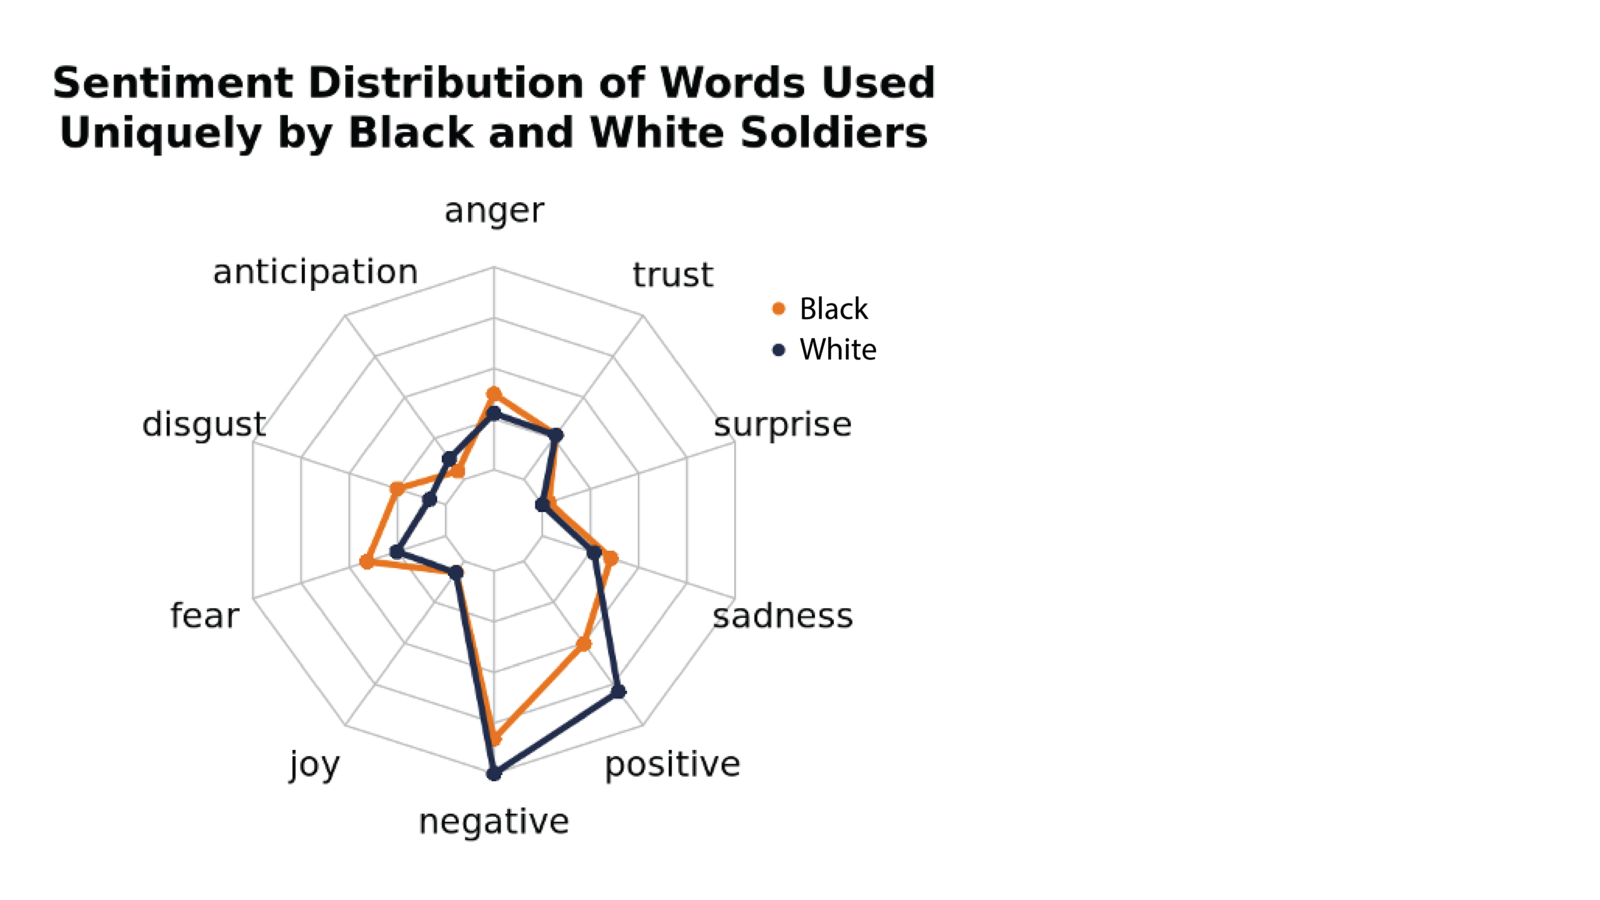 Spider Graph of Sentiment Distribution